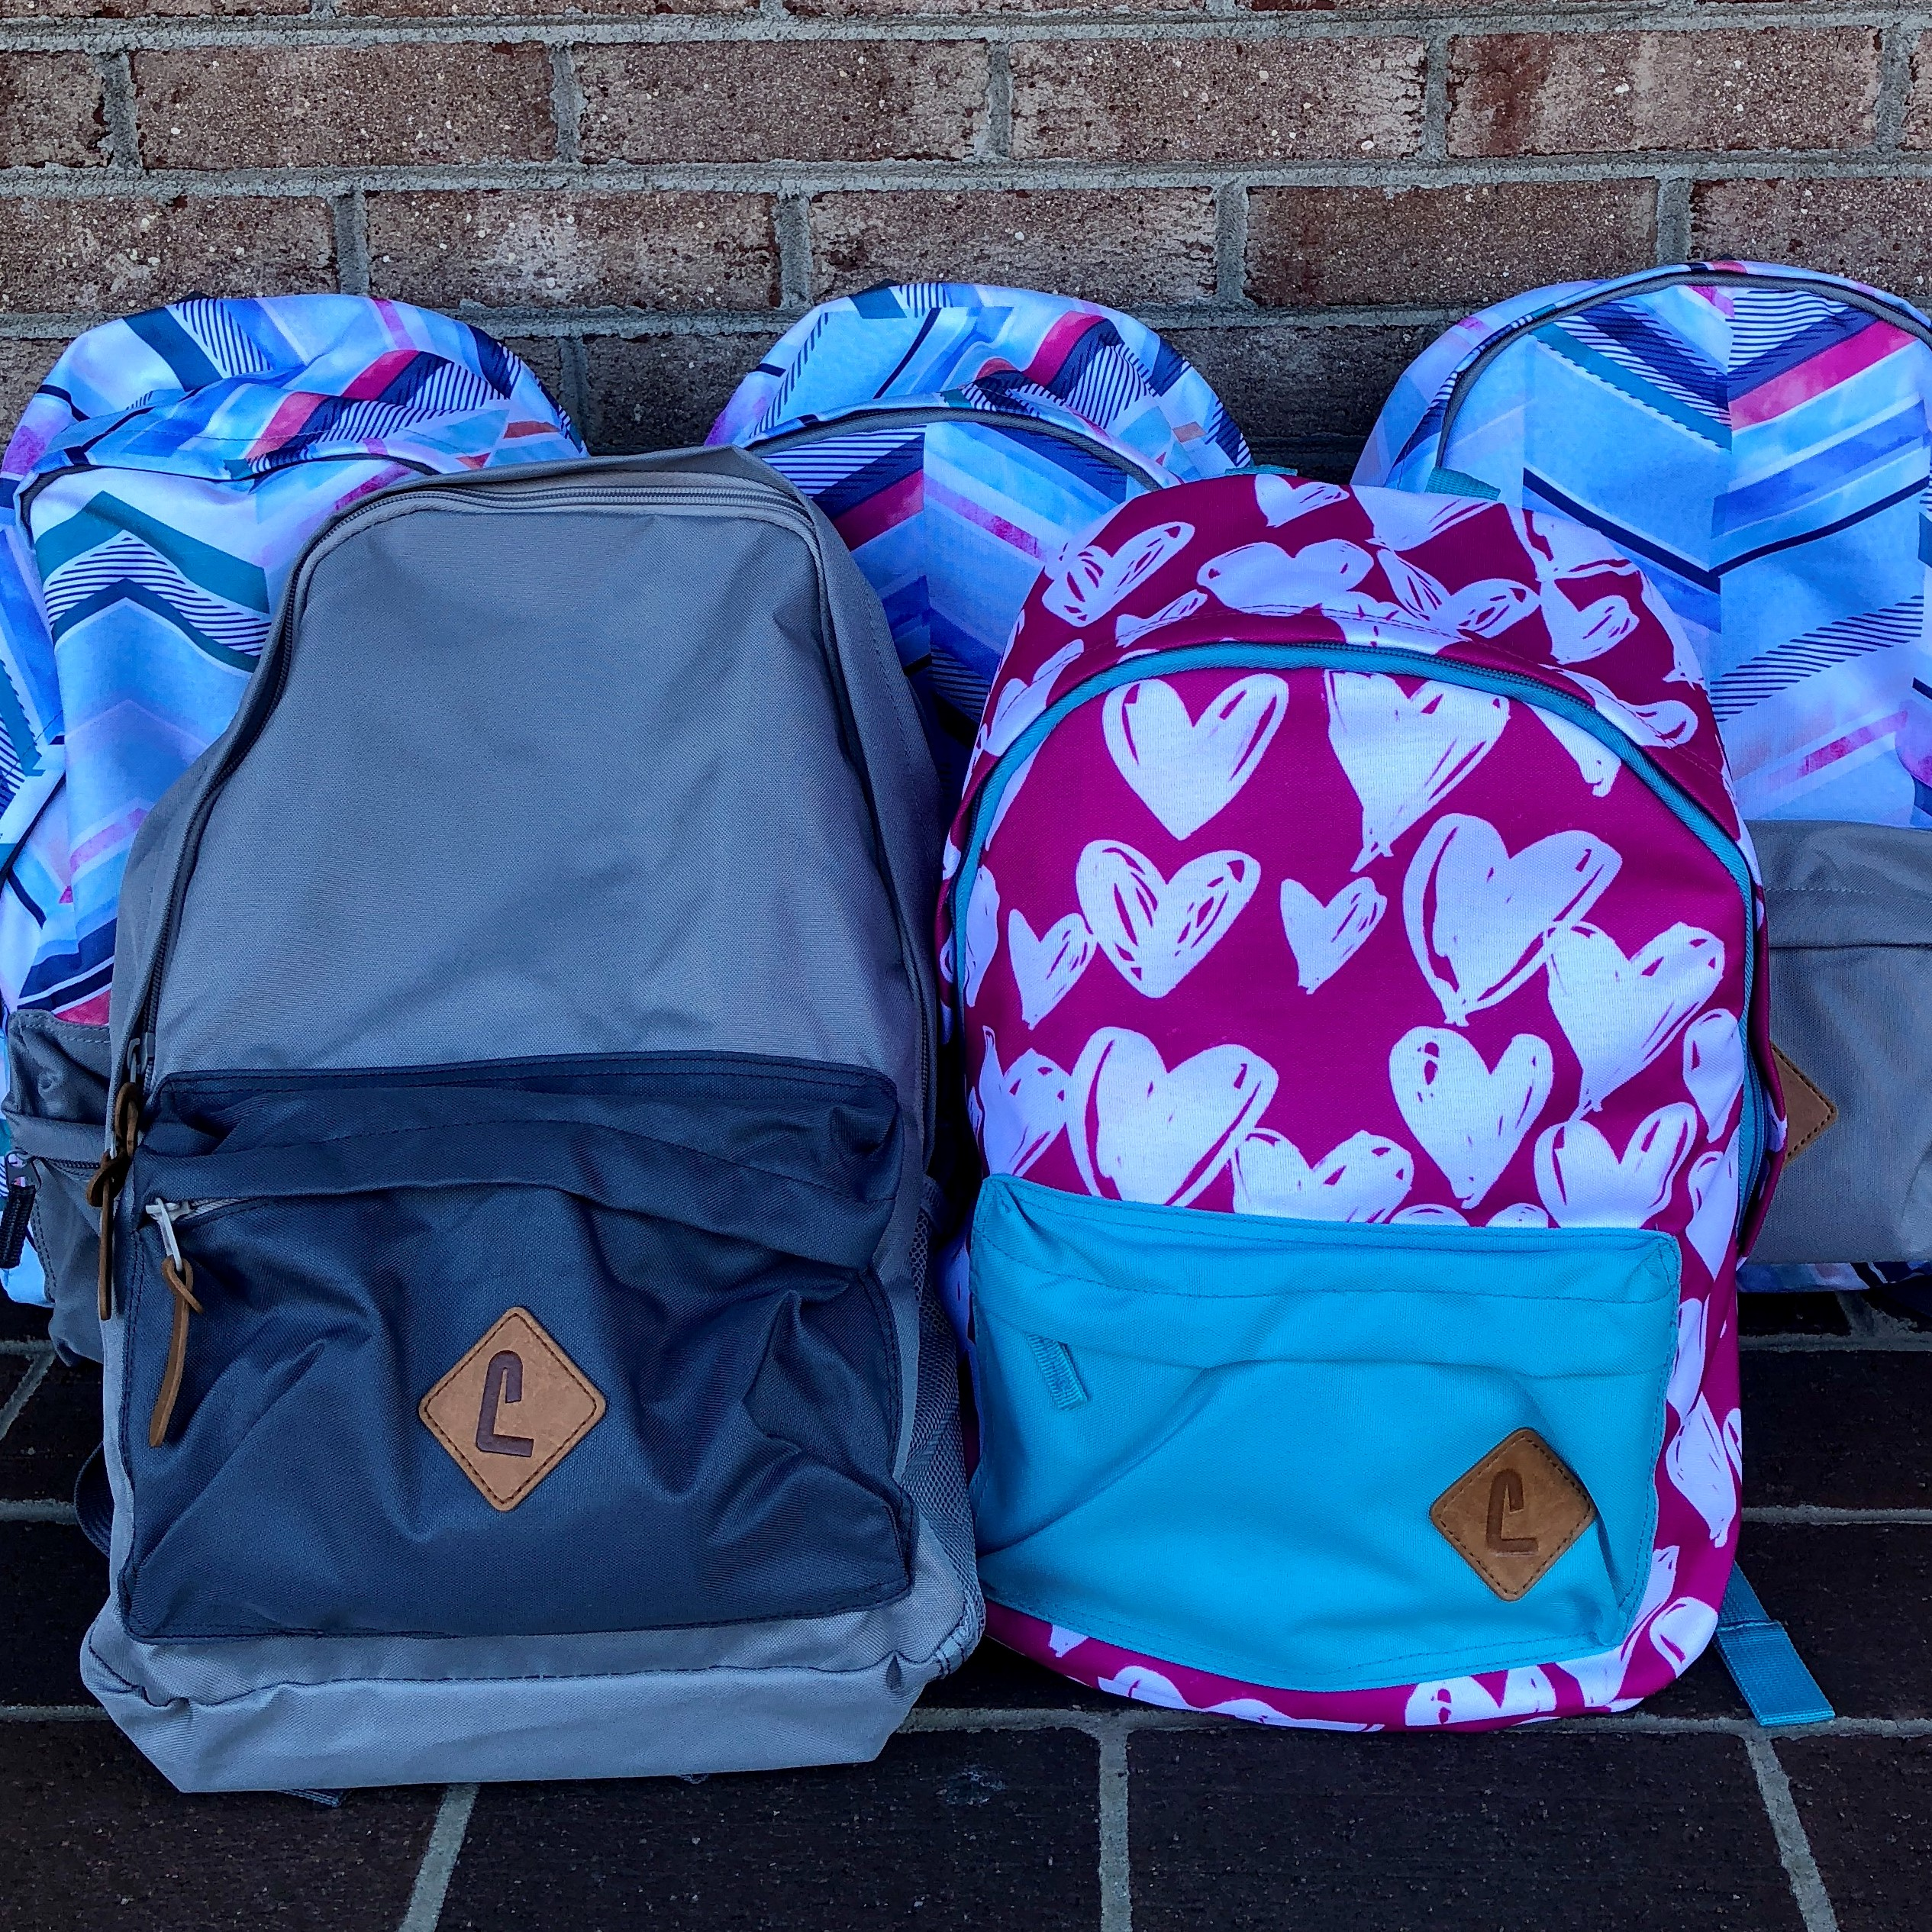 Photograph of 5 Backpacks